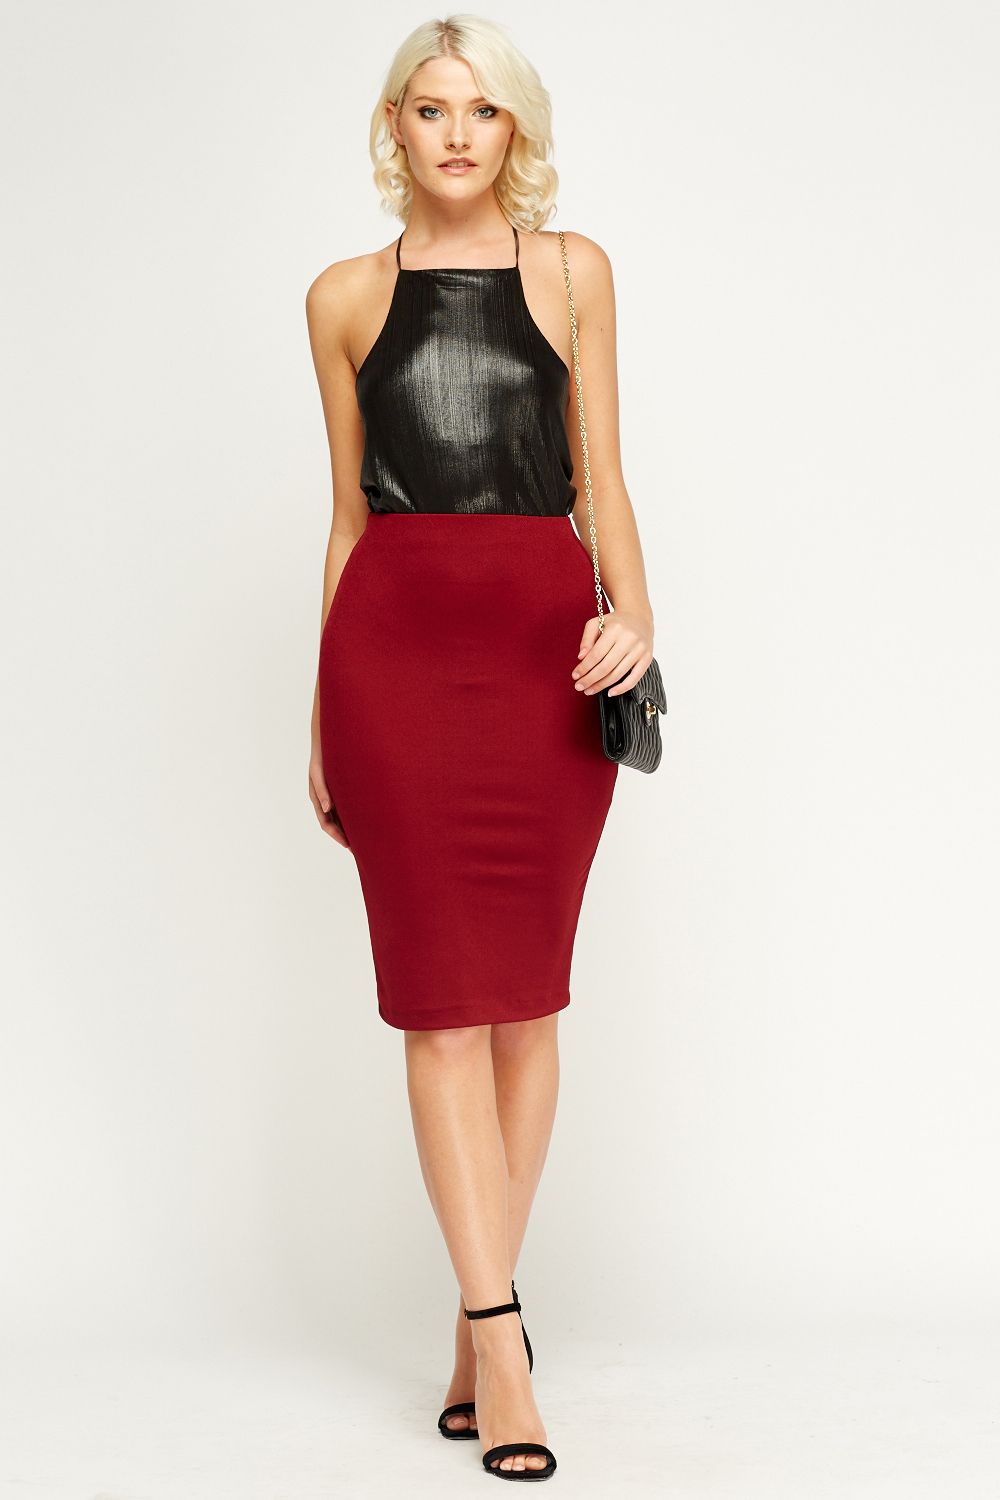 Midi Skirts | Buy cheap Midi Skirts for just £5 on ...